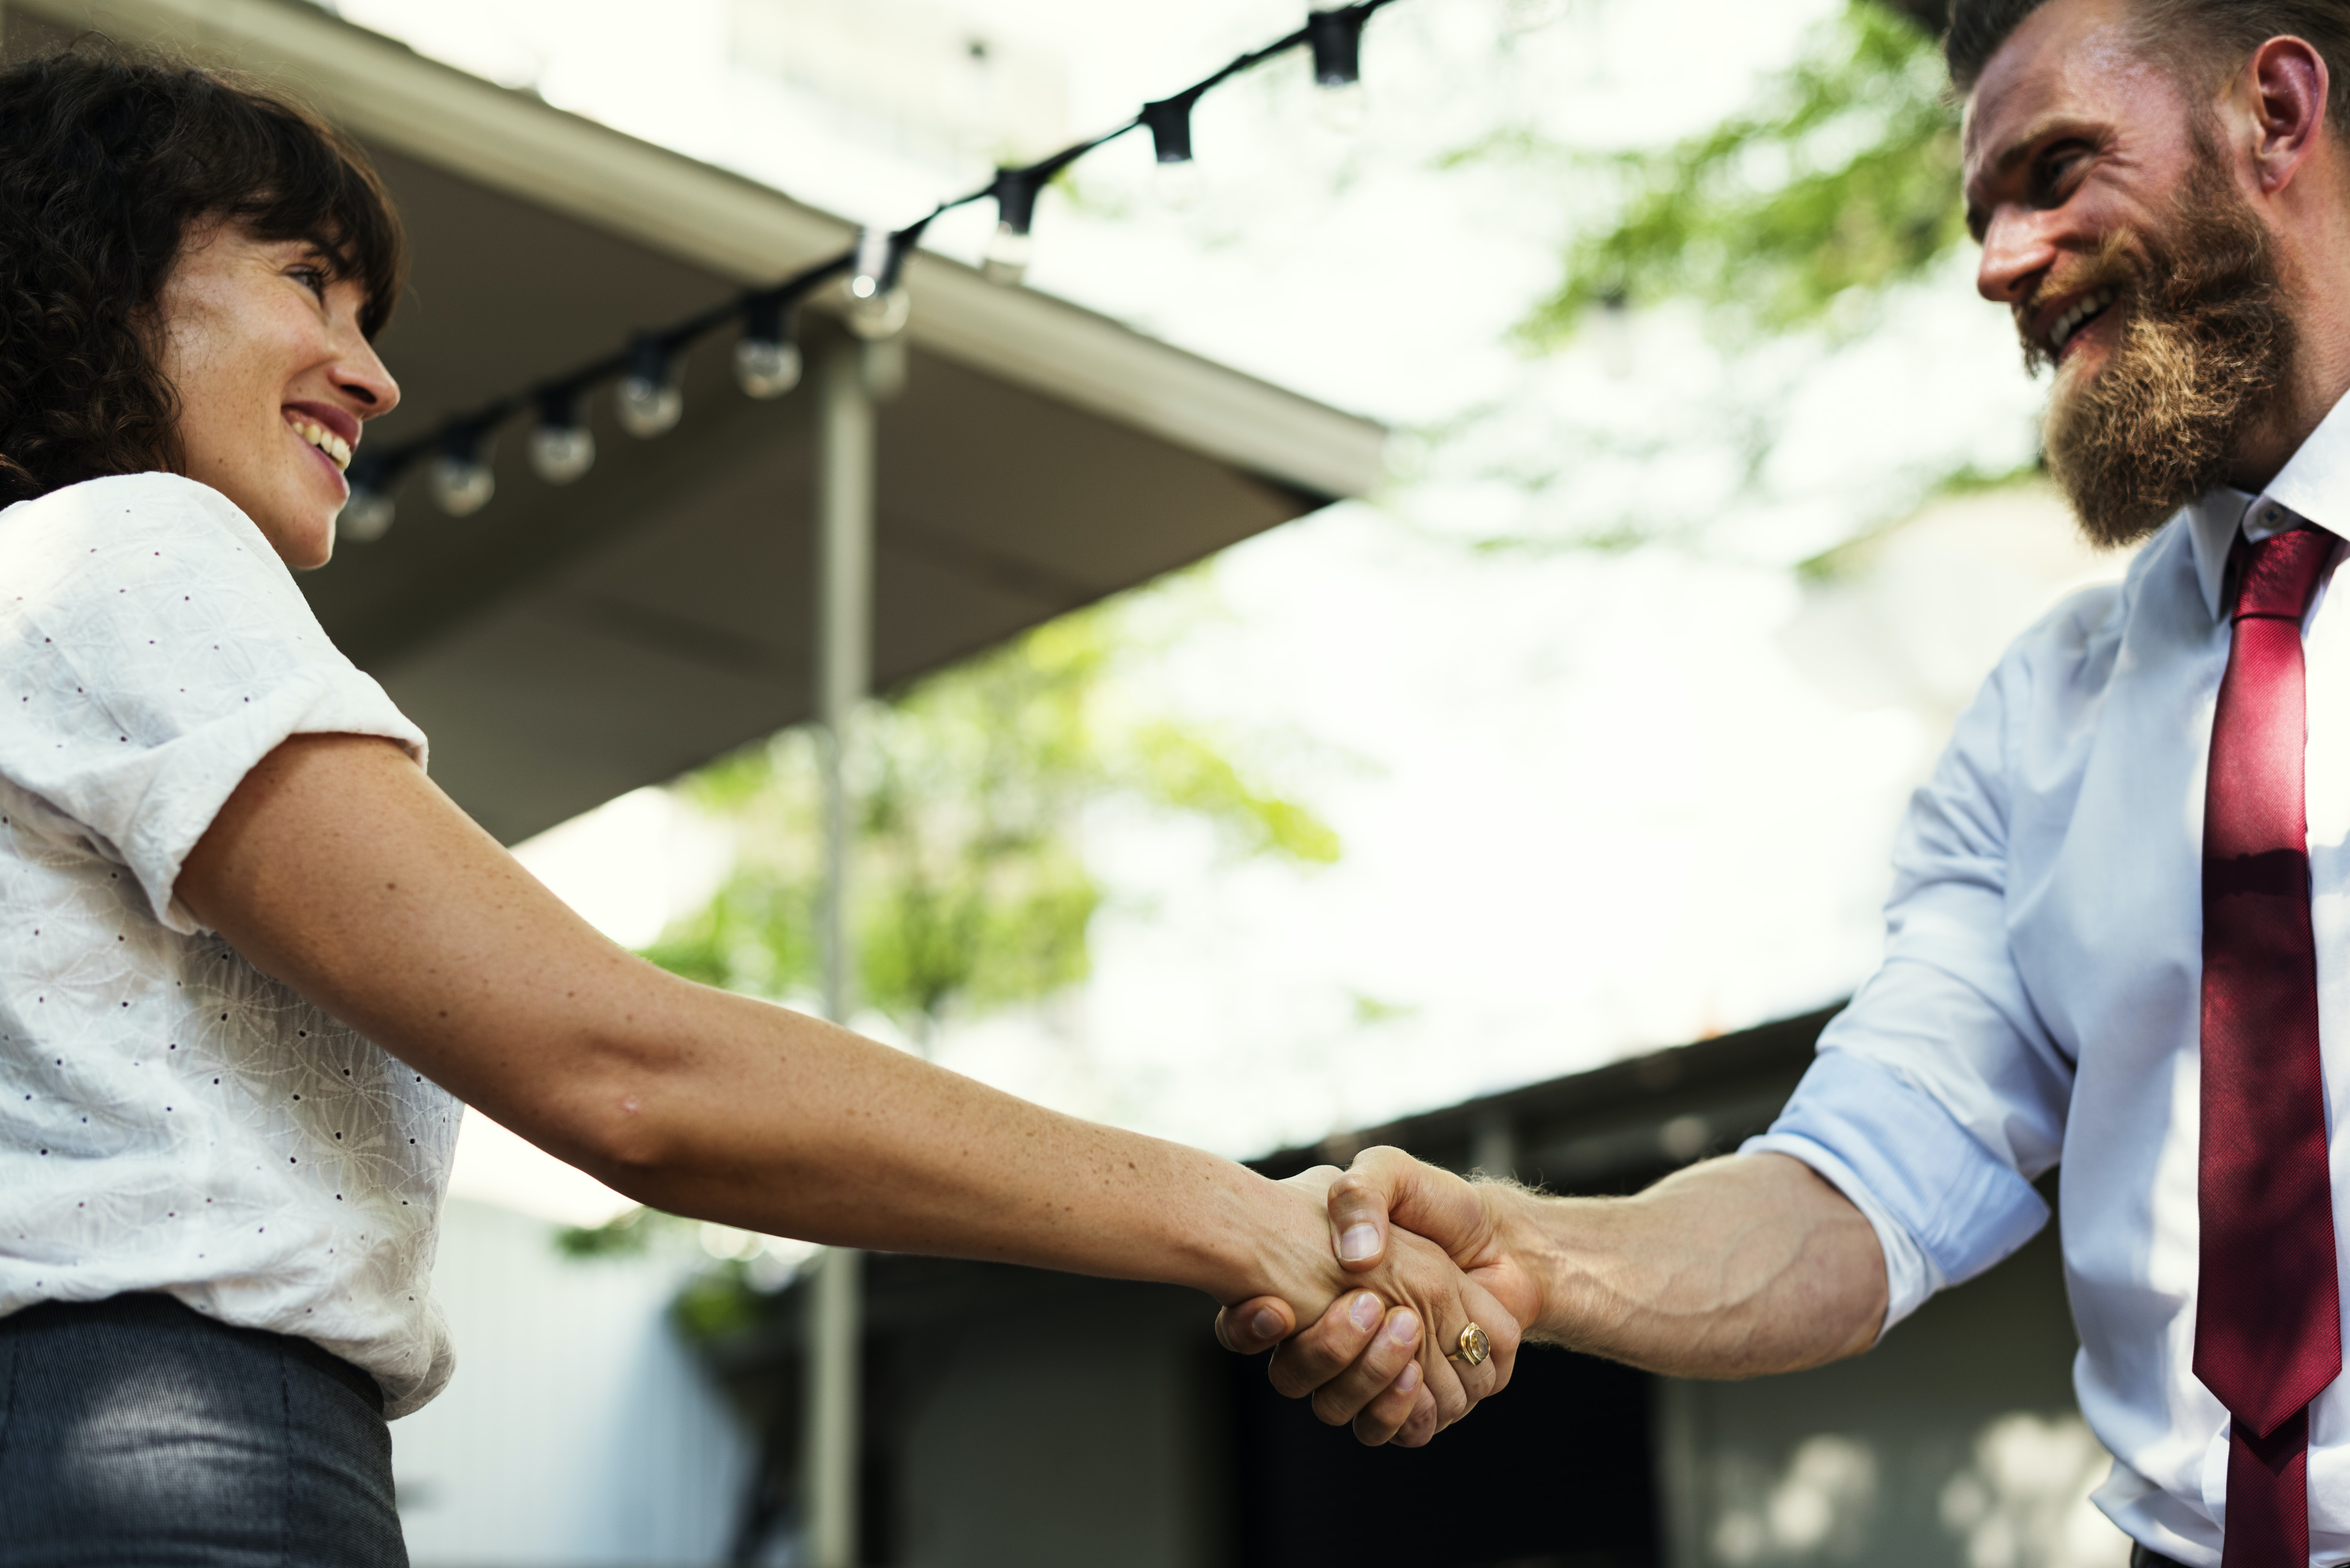 man shaking hands with woman